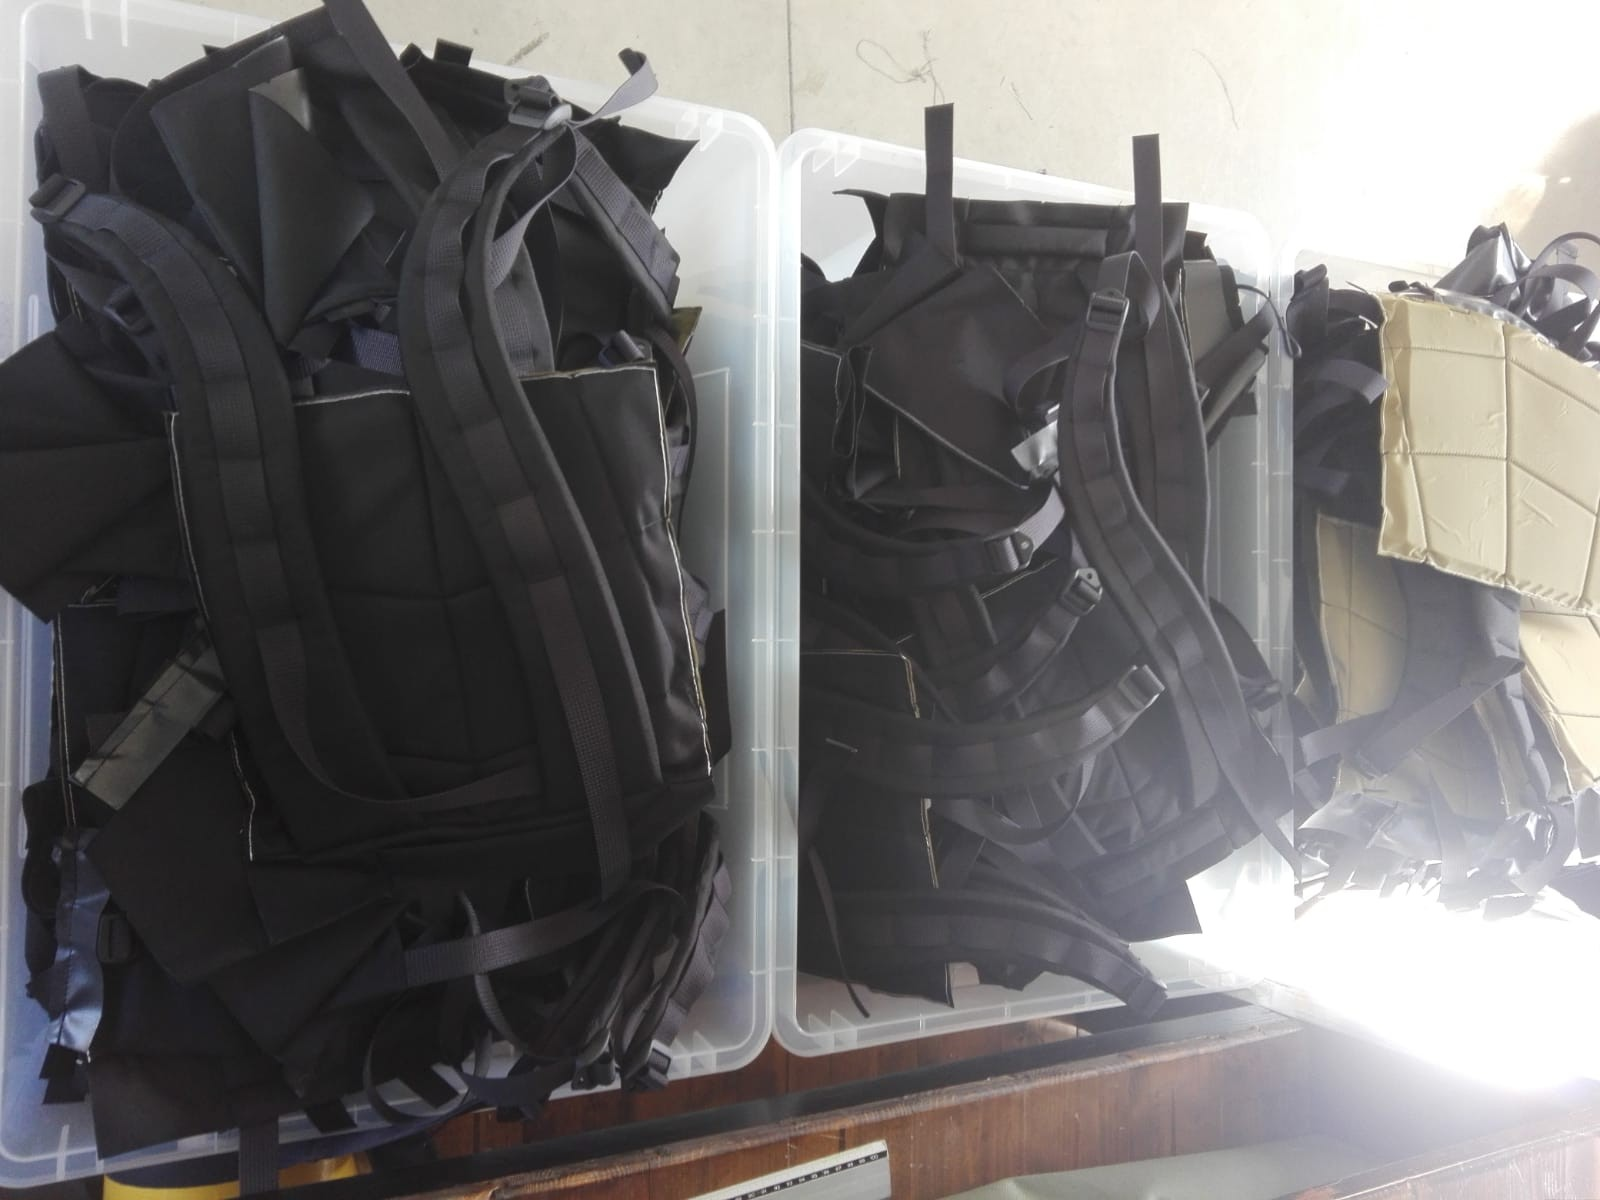 Attitude Supply ATD1 Back Panel manufacturing interview